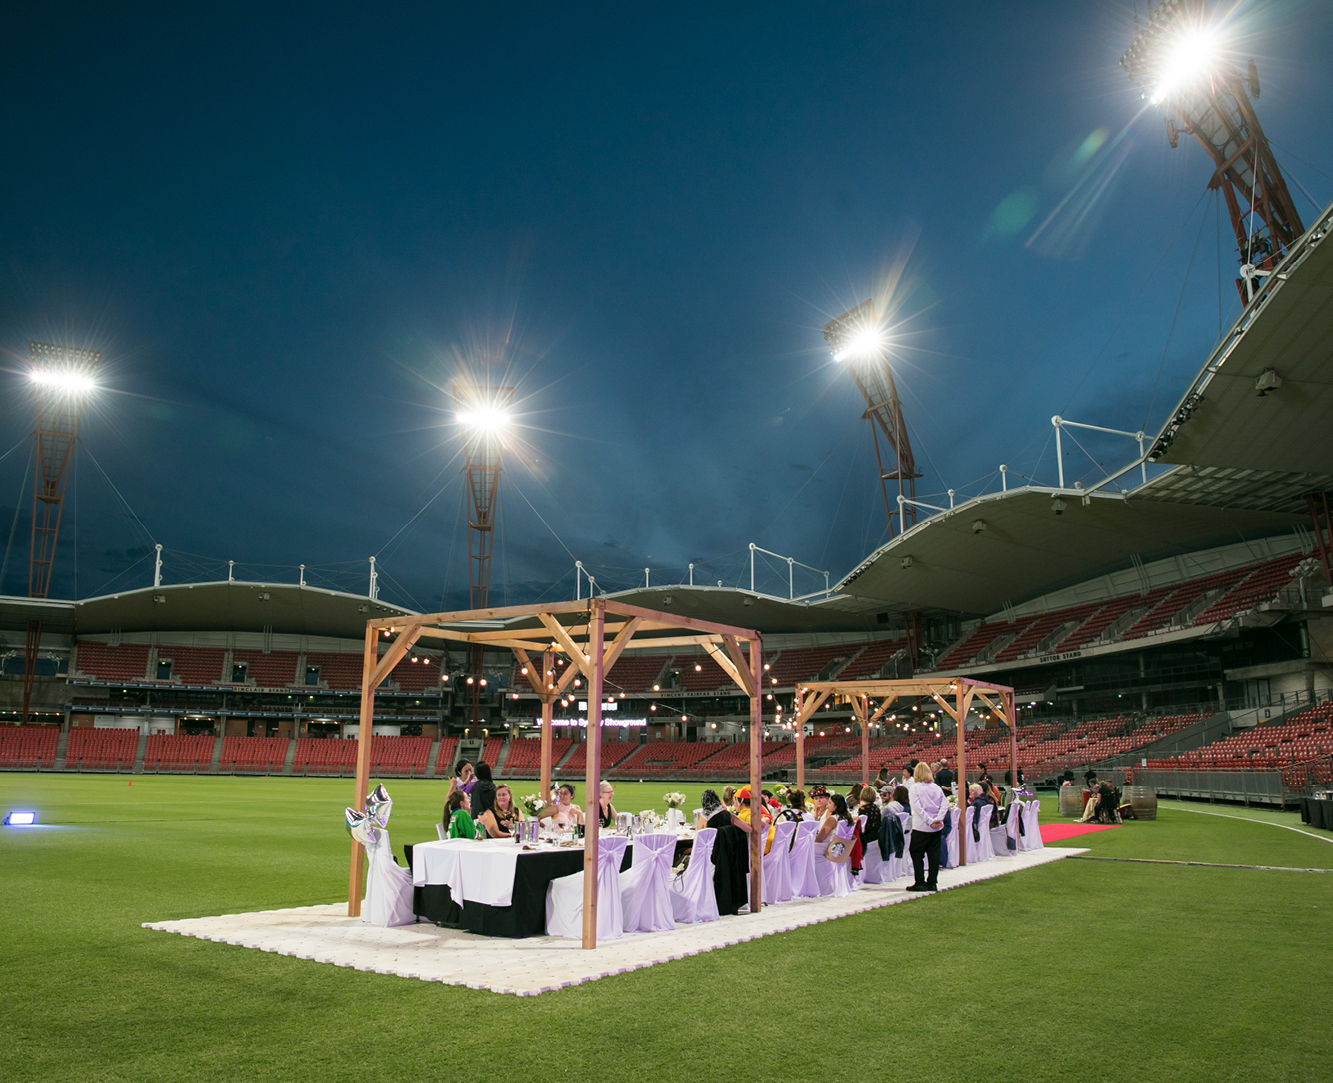 A Night Under the Stars at Sydney Showground Stadium